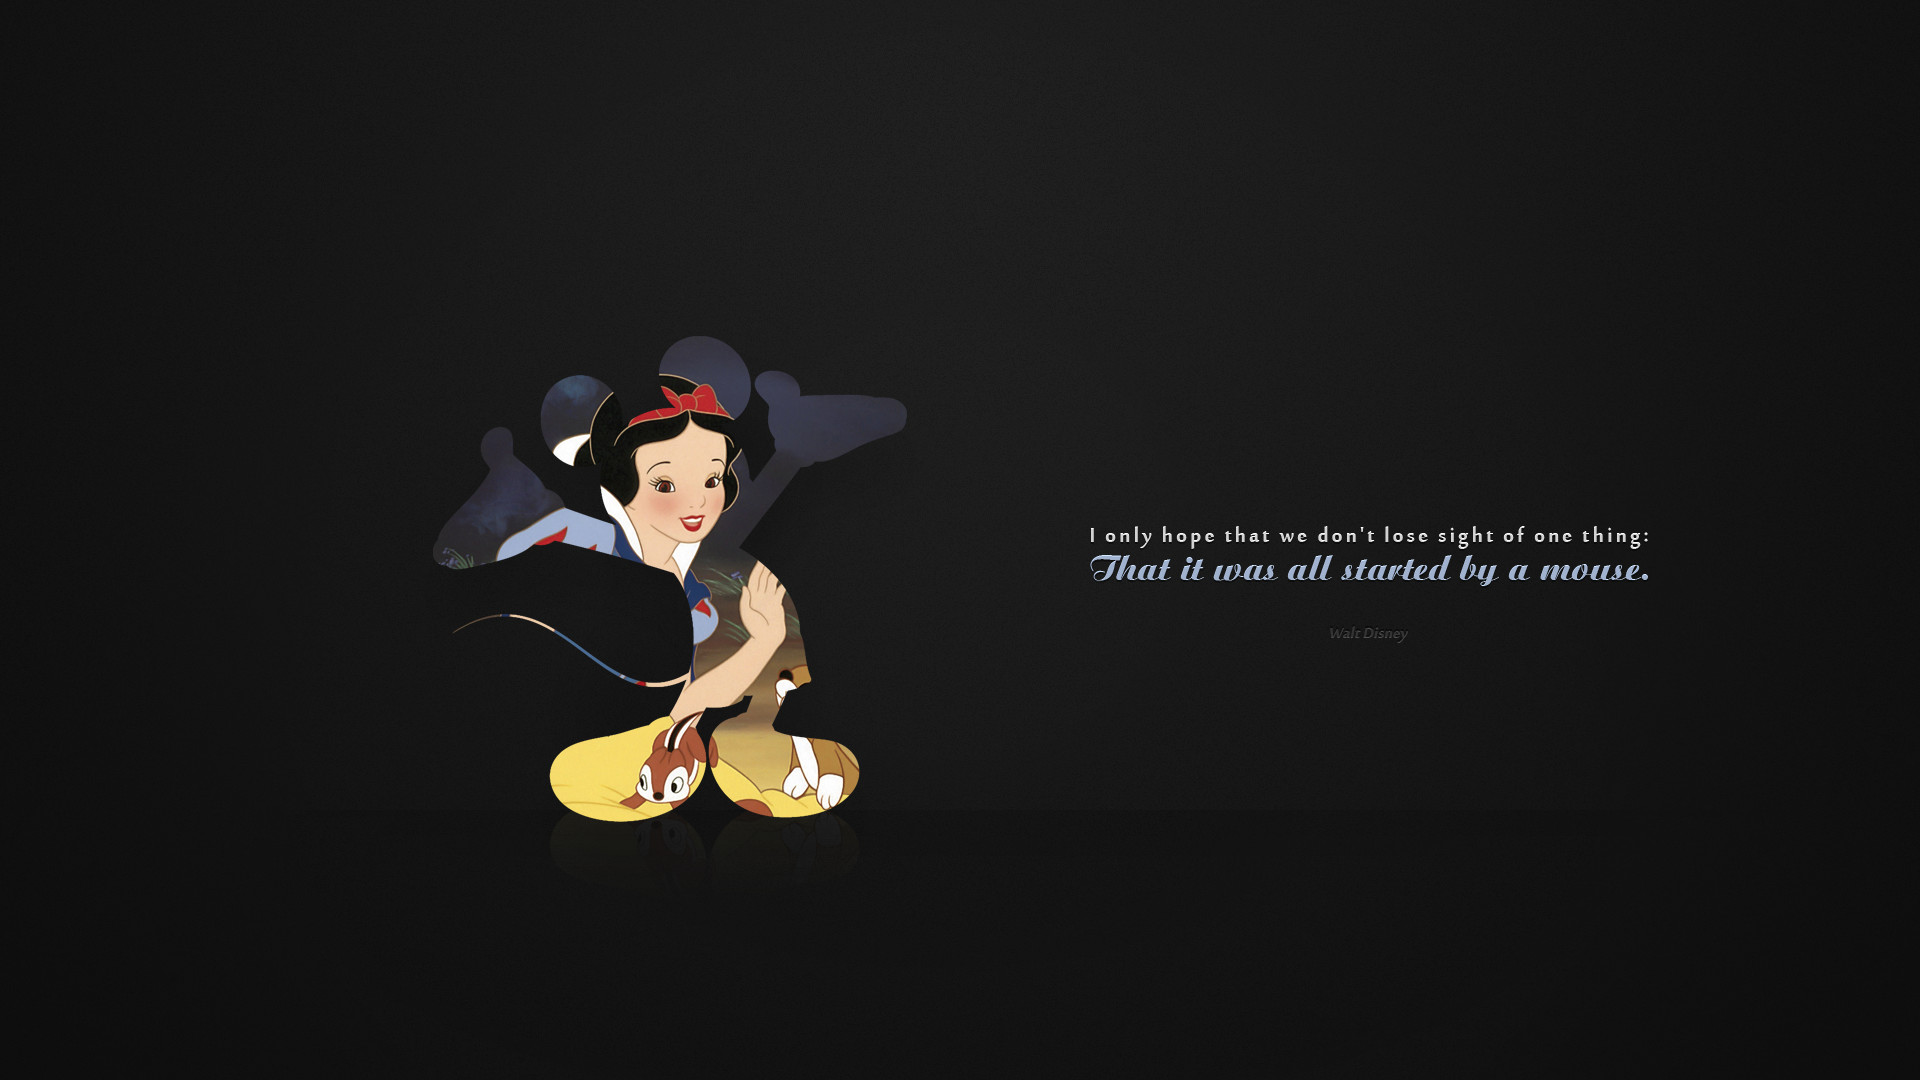 Disney Quotes Desktop Wallpaper. QuotesGram 0 HTML code. Some time ago, I  discovered a wallpaper that apparently never got .